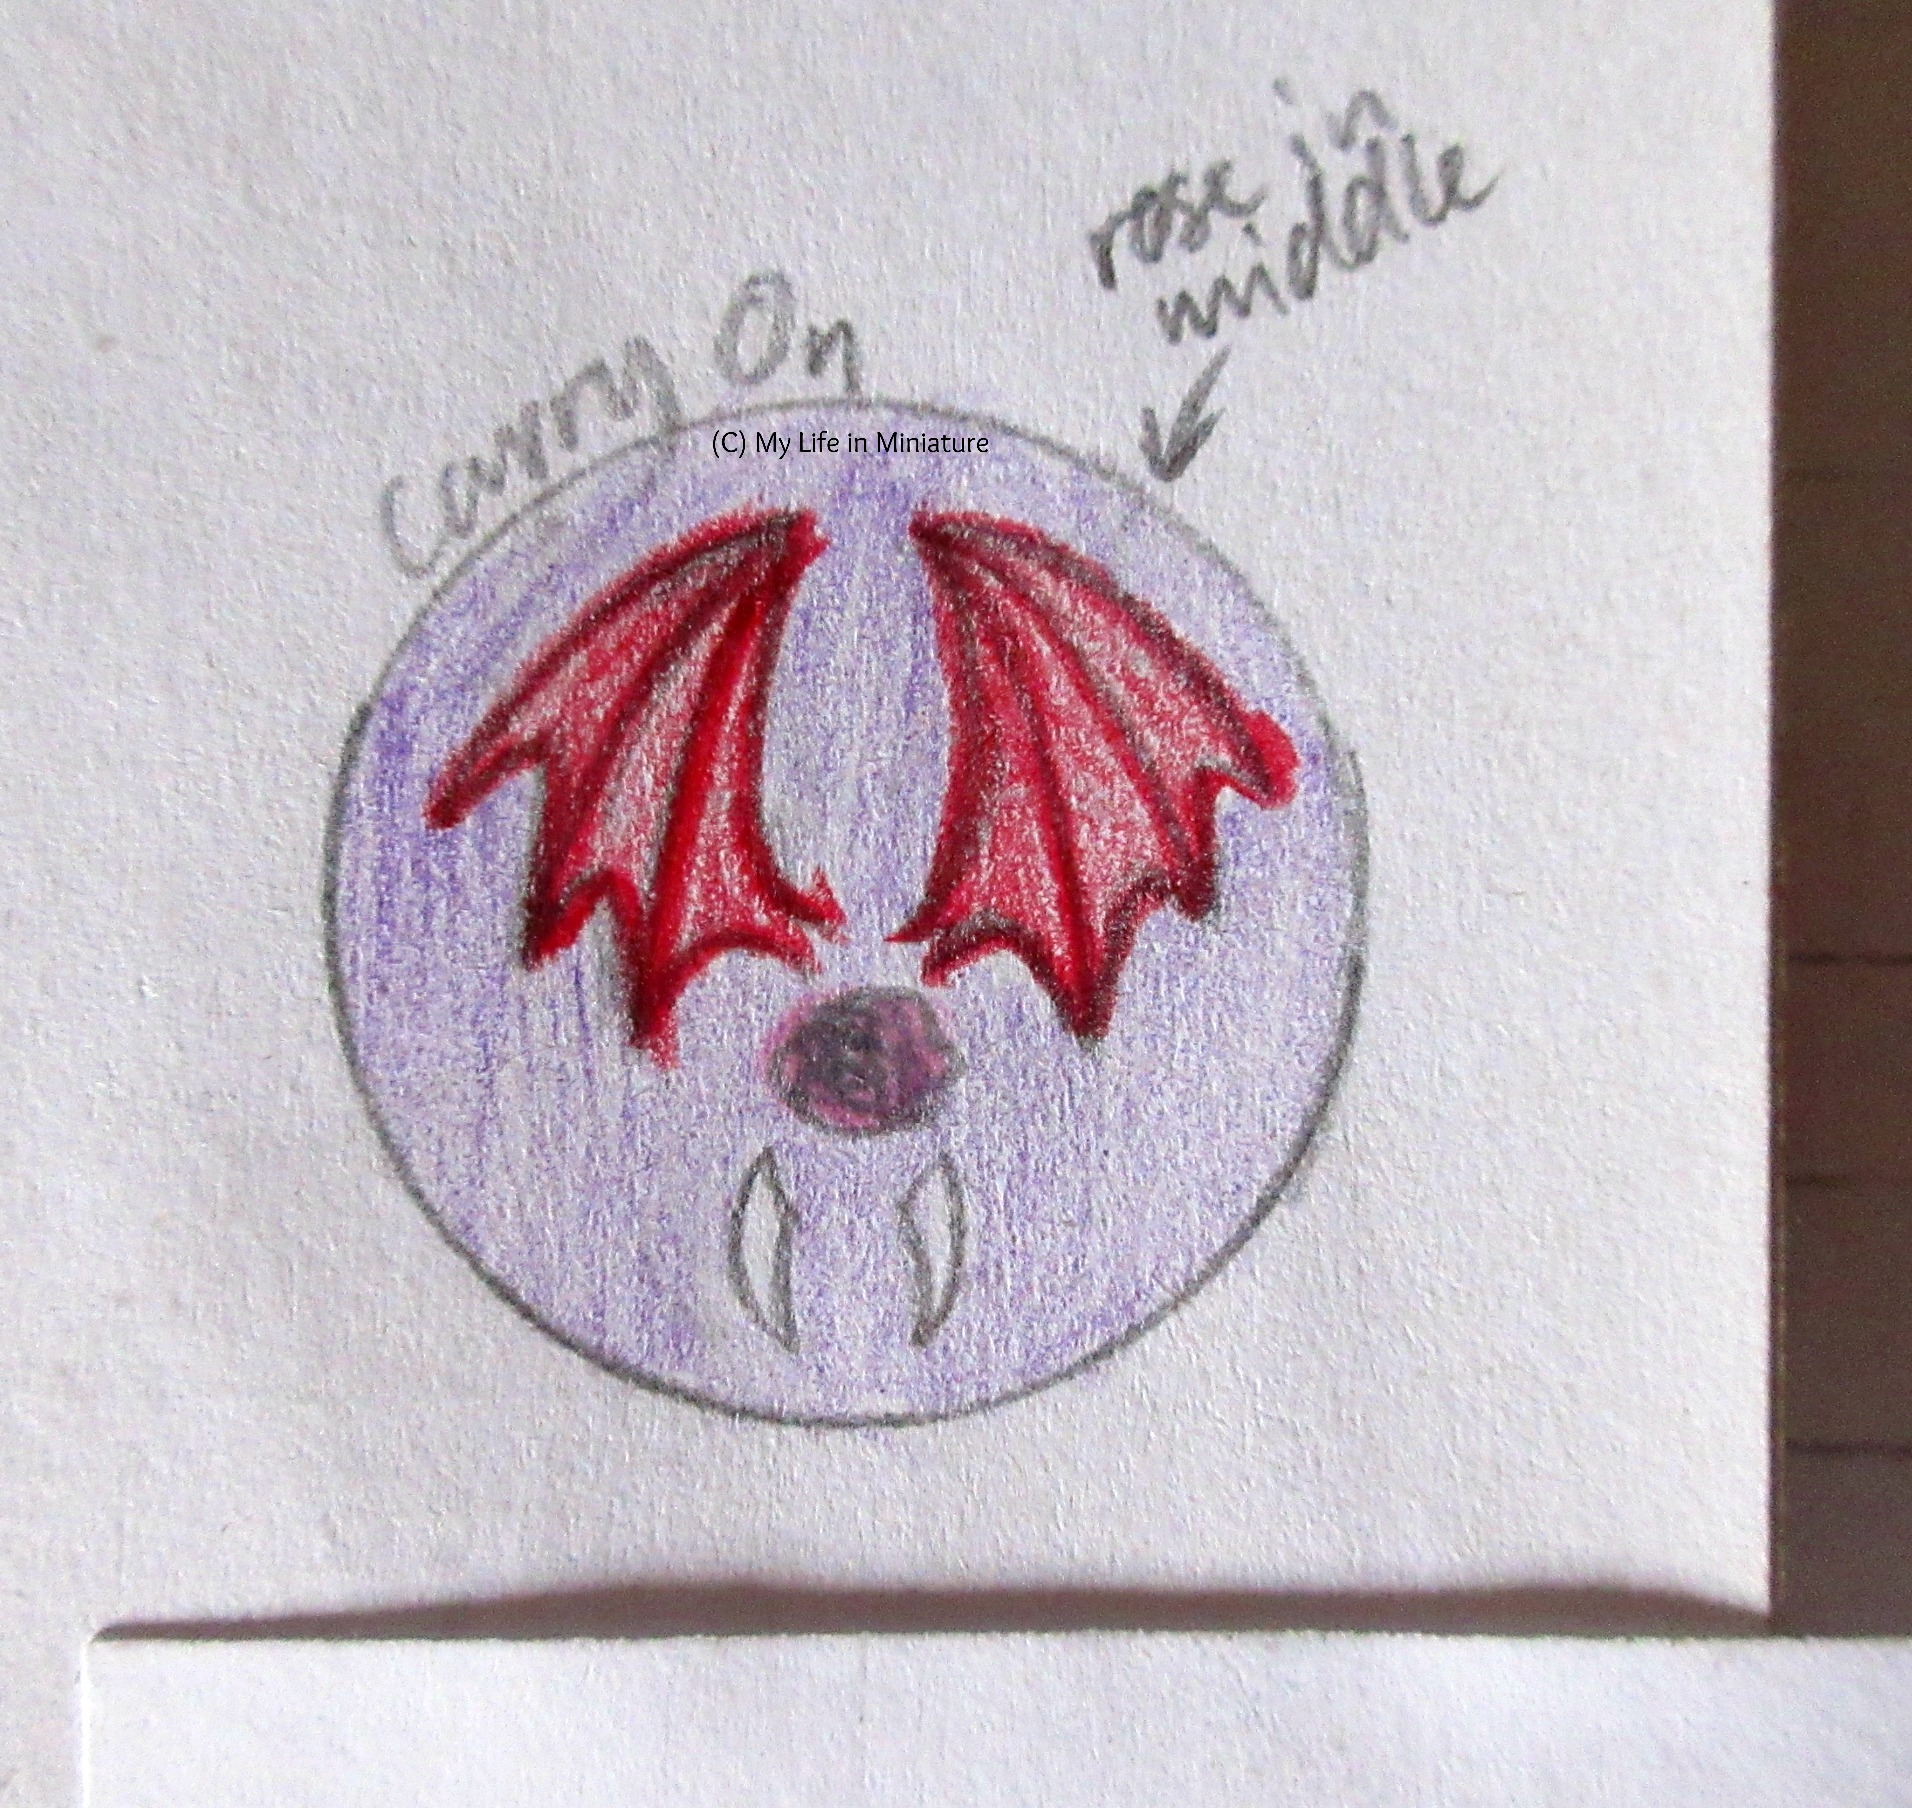 A sketch from a sketchbook shows a badge design inspired by 'Carry On' by Rainbow Rowell. A pink rose is in the centre, with red dragon wings above and two vampire teeth below. There is a purple background.